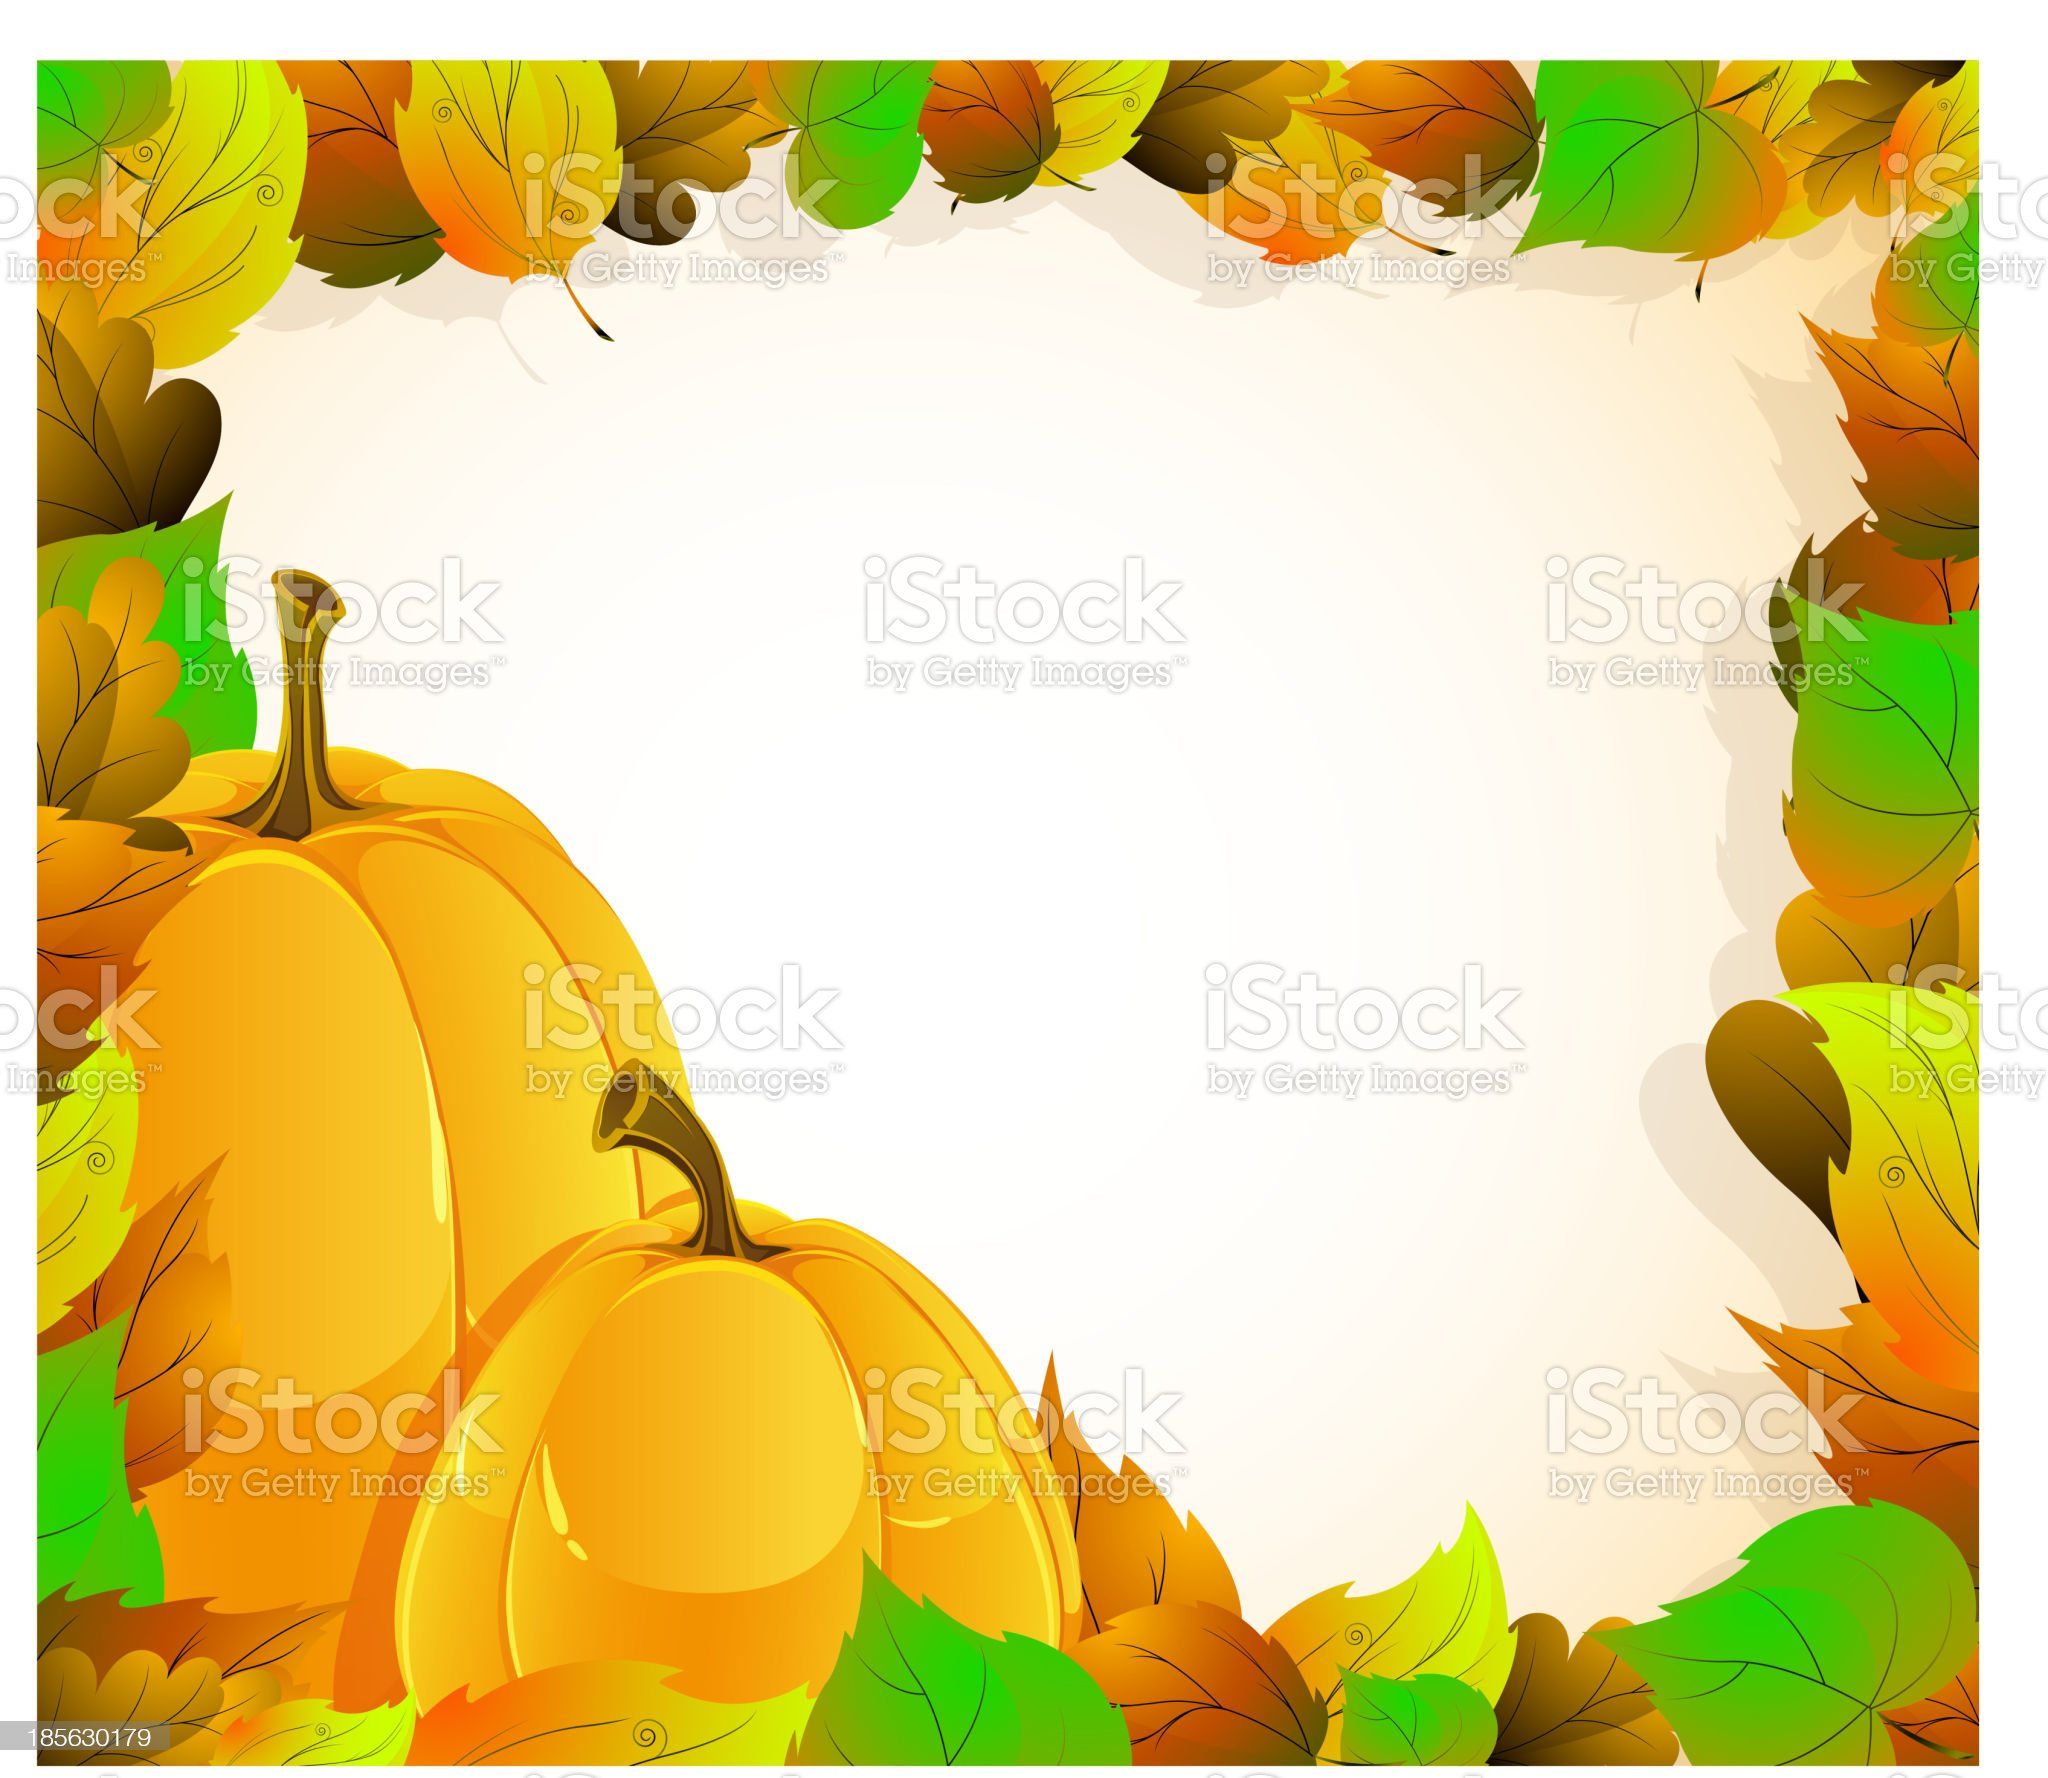 Pumpkins and  leaves royalty-free stock vector art